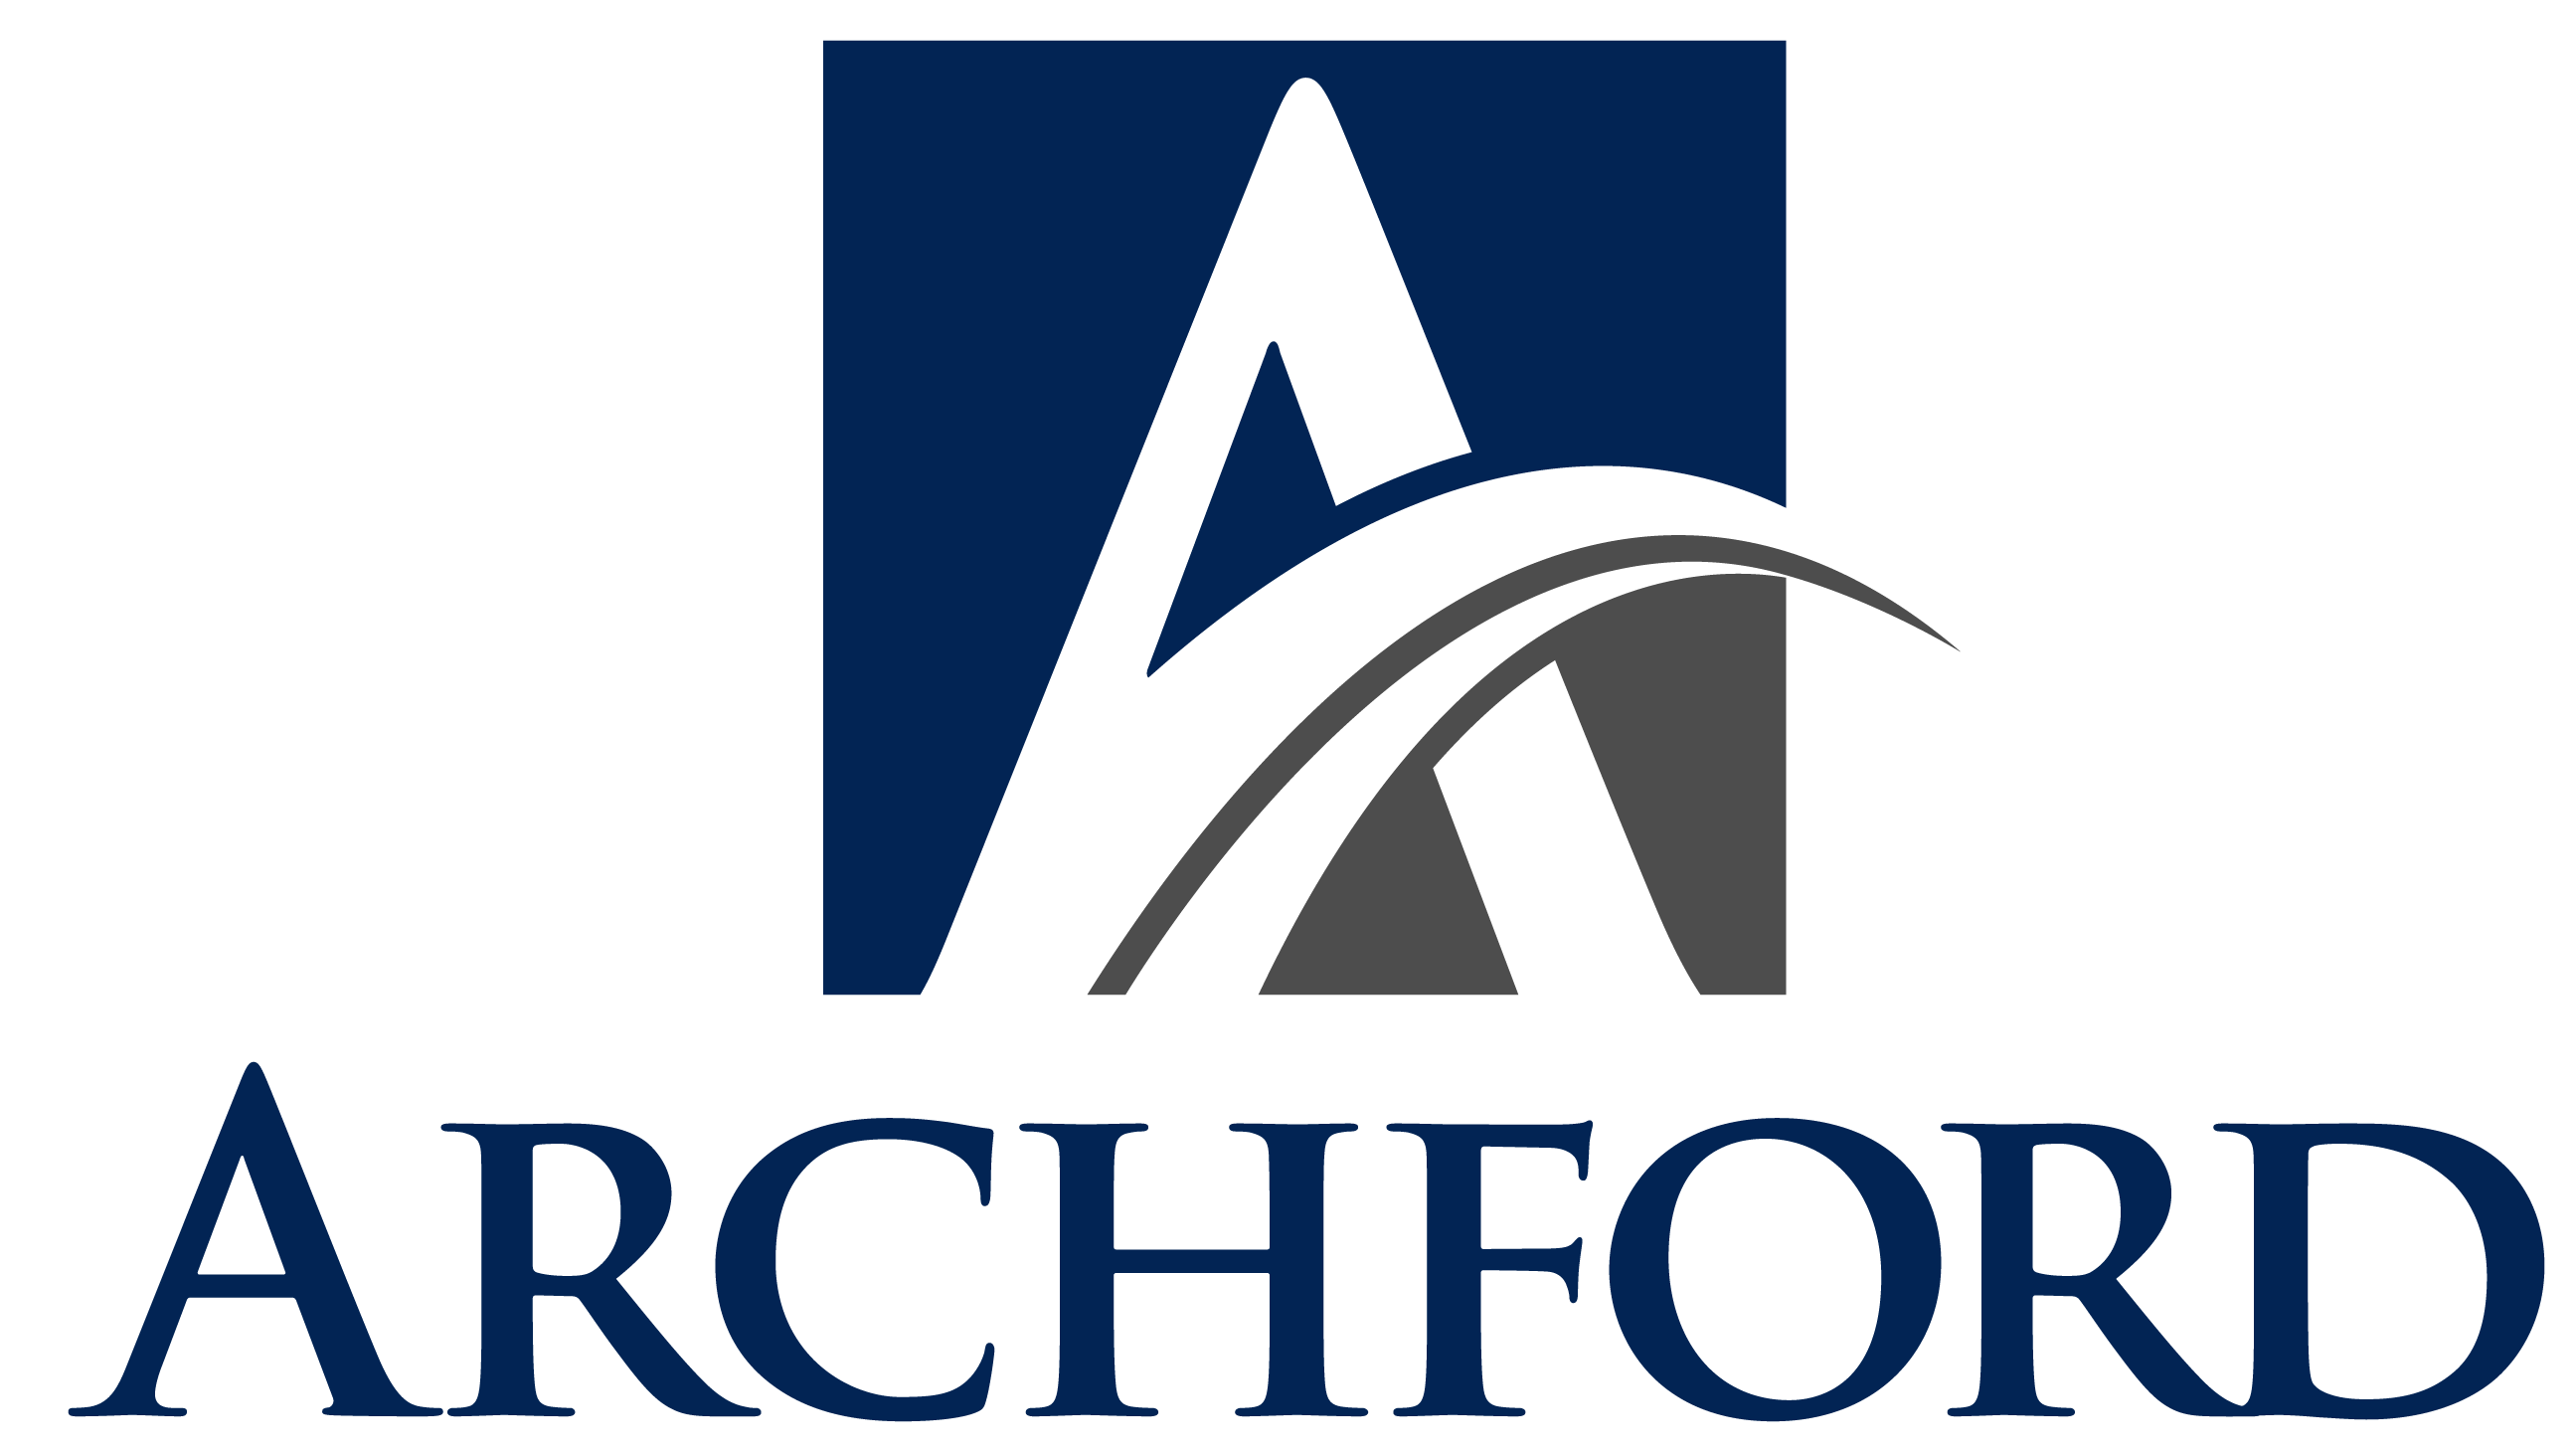 Archford logo png